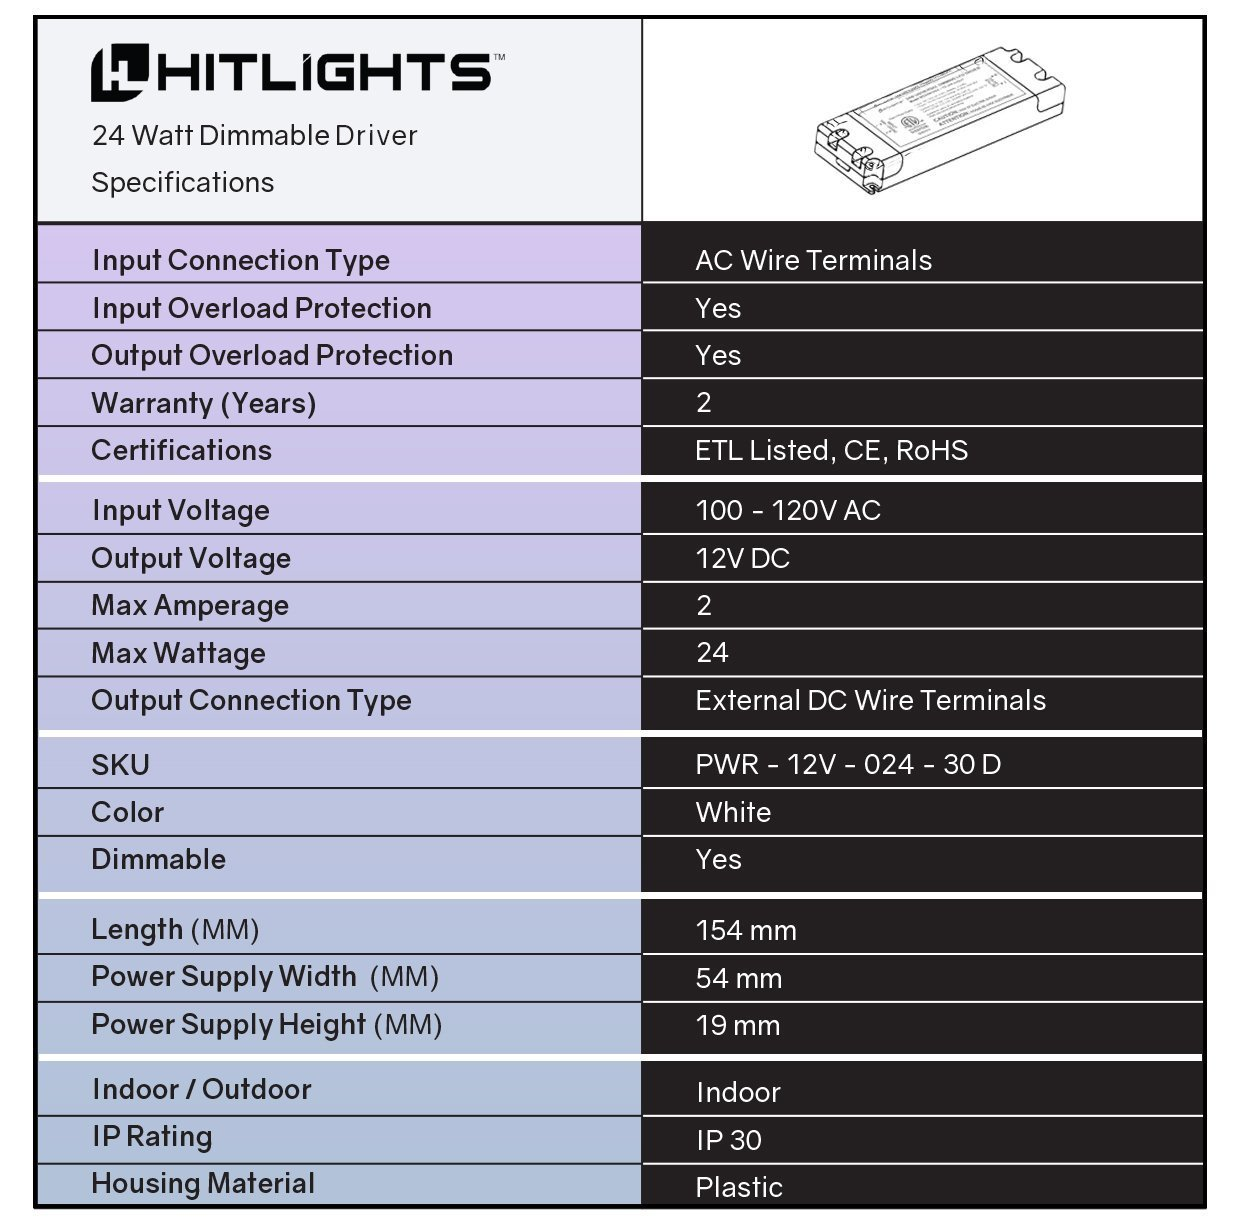 HitLights 24 Watt Dimmable Driver, Universal, for LED Light Strips - 110V AC-12V DC Transformer. Compatible with Lutron and Leviton by HitLights (Image #1)